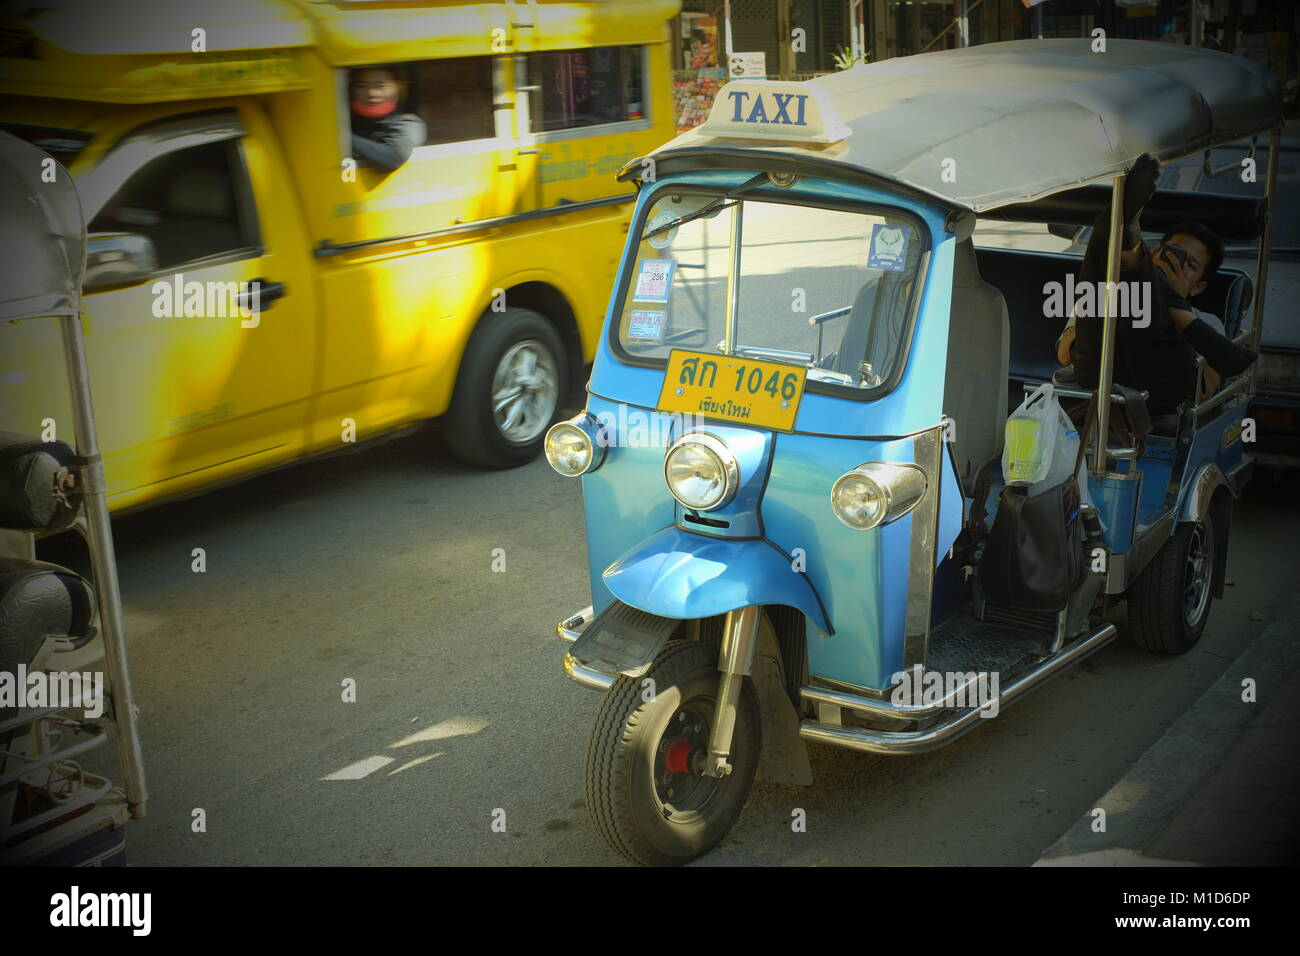 A blue tuk-tuk and a yellow songthaew taxi in Chiang Mai, Thailand. 24-Jan-2018 - Stock Image